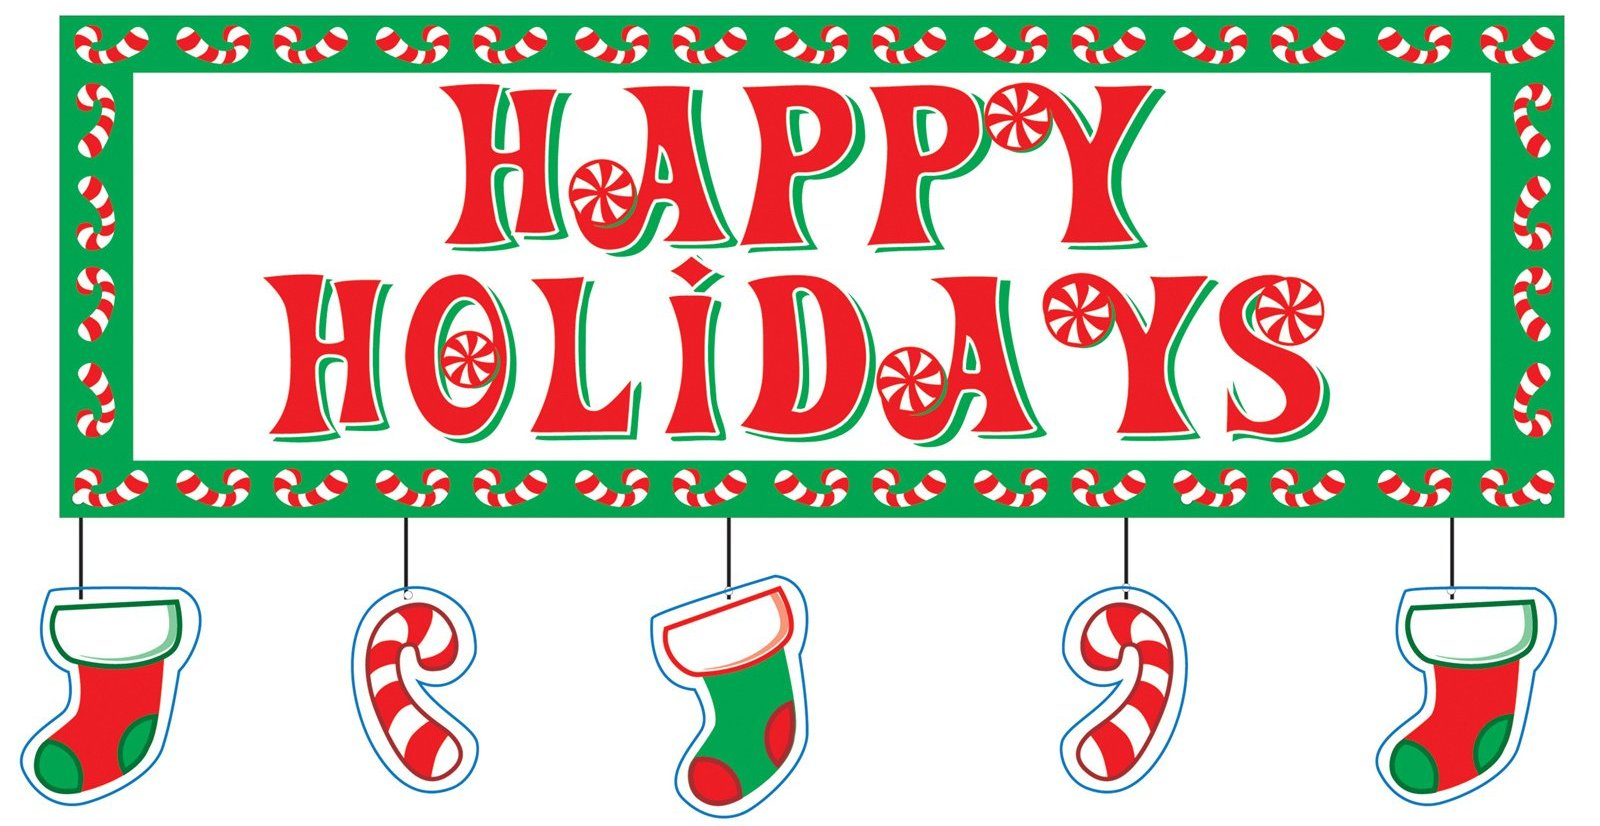 Happy Holiday Greeting From 92101 Urban Living